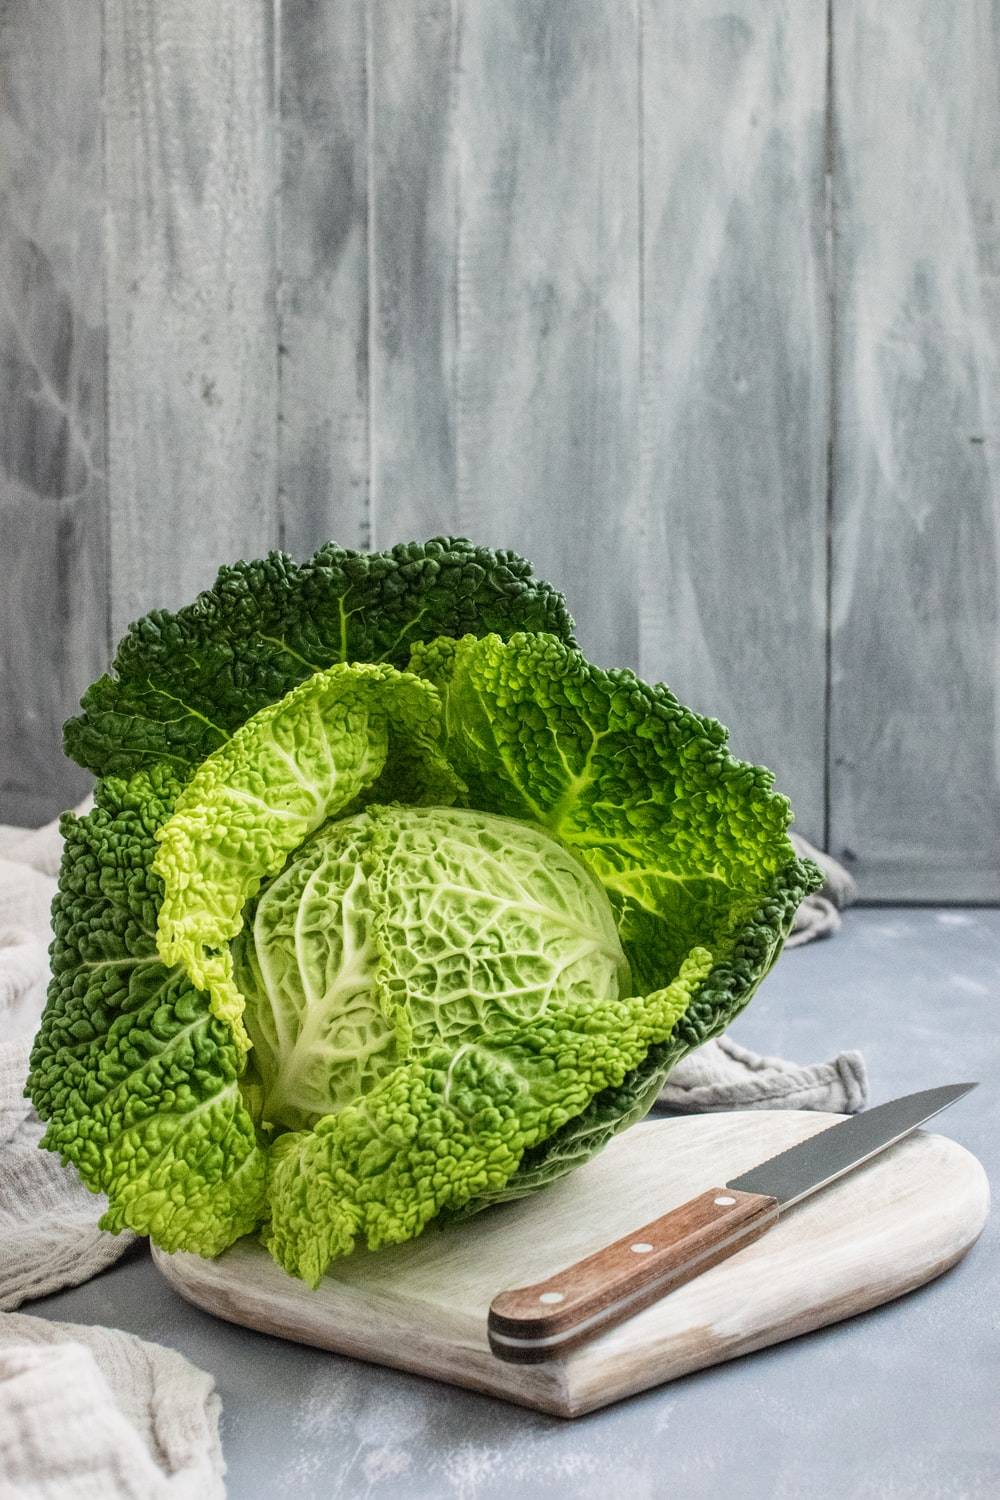 green cabbage on brown wooden chopping board